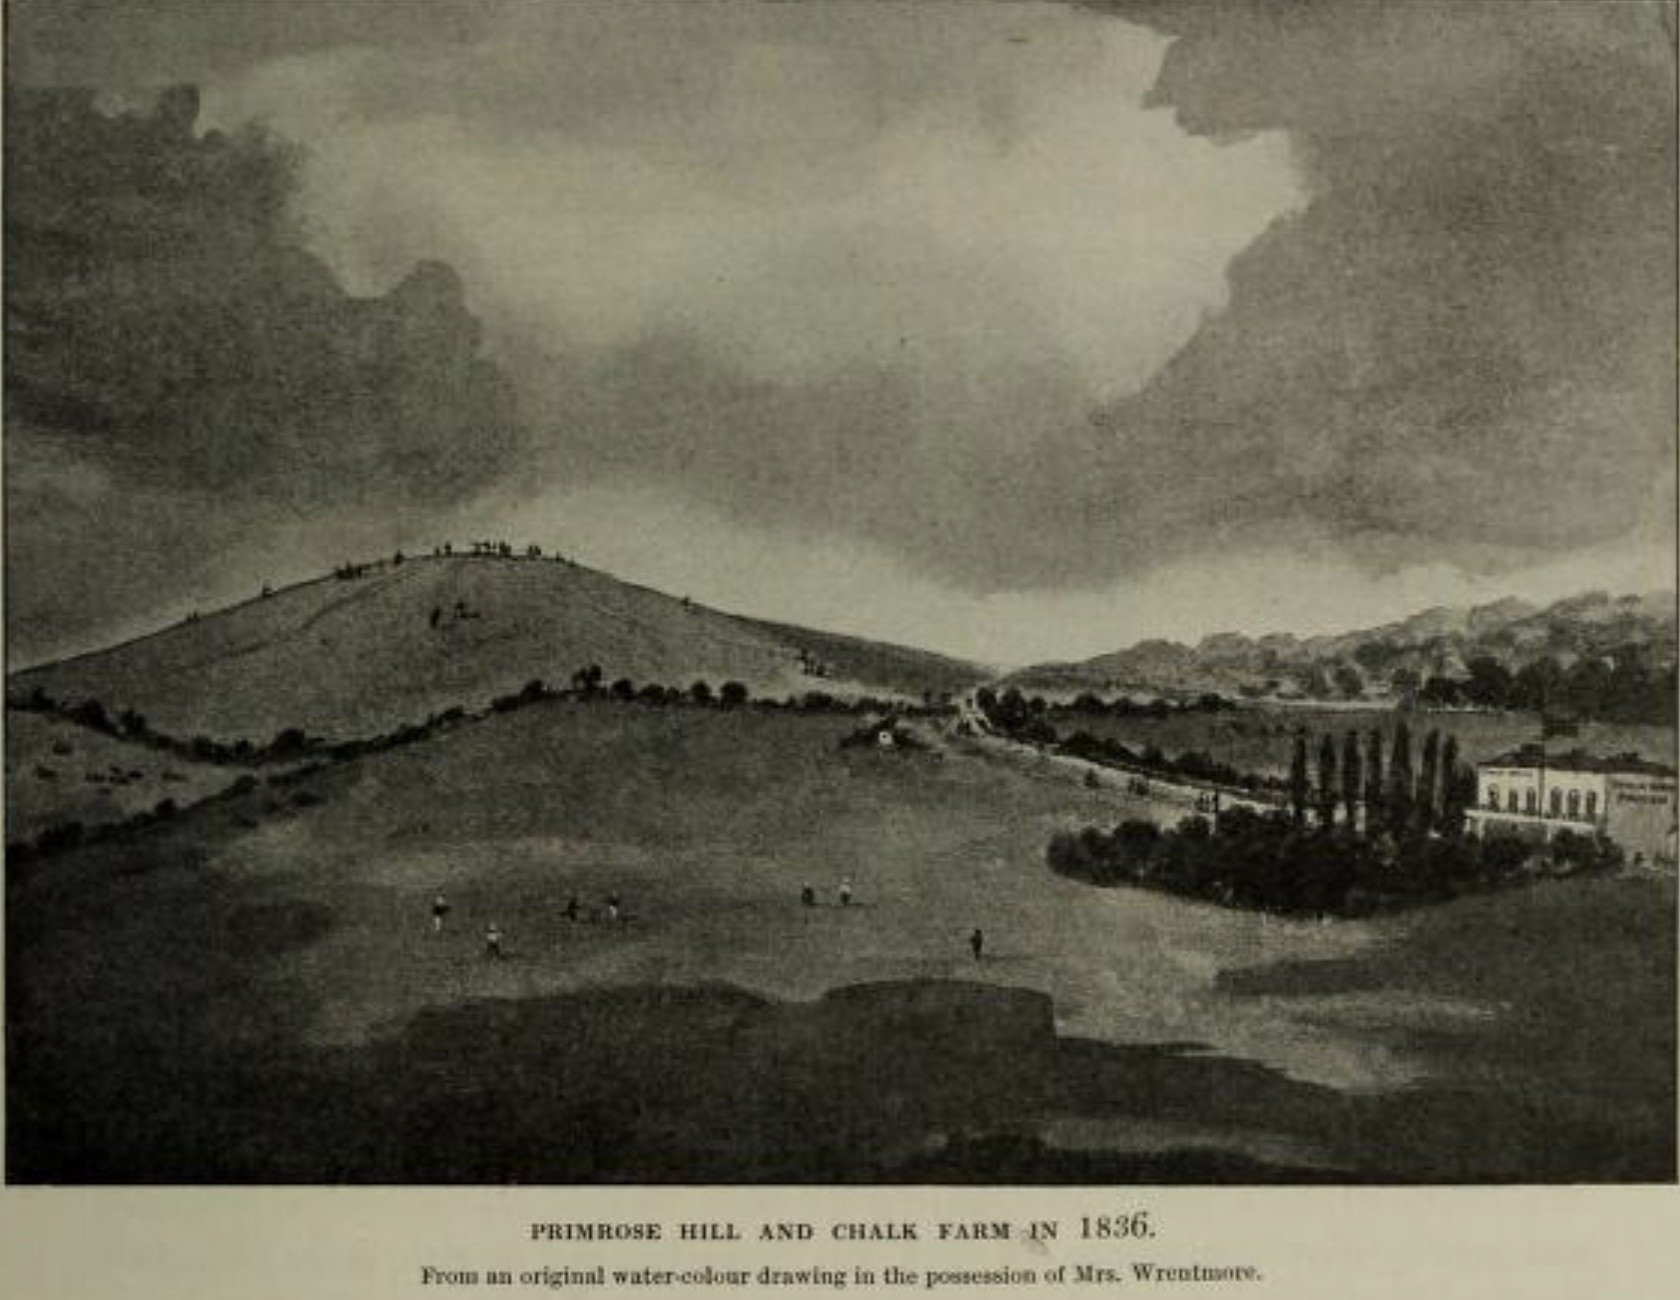 Primrose Hill and Chalk Farm in 1836. Click to enlarge.